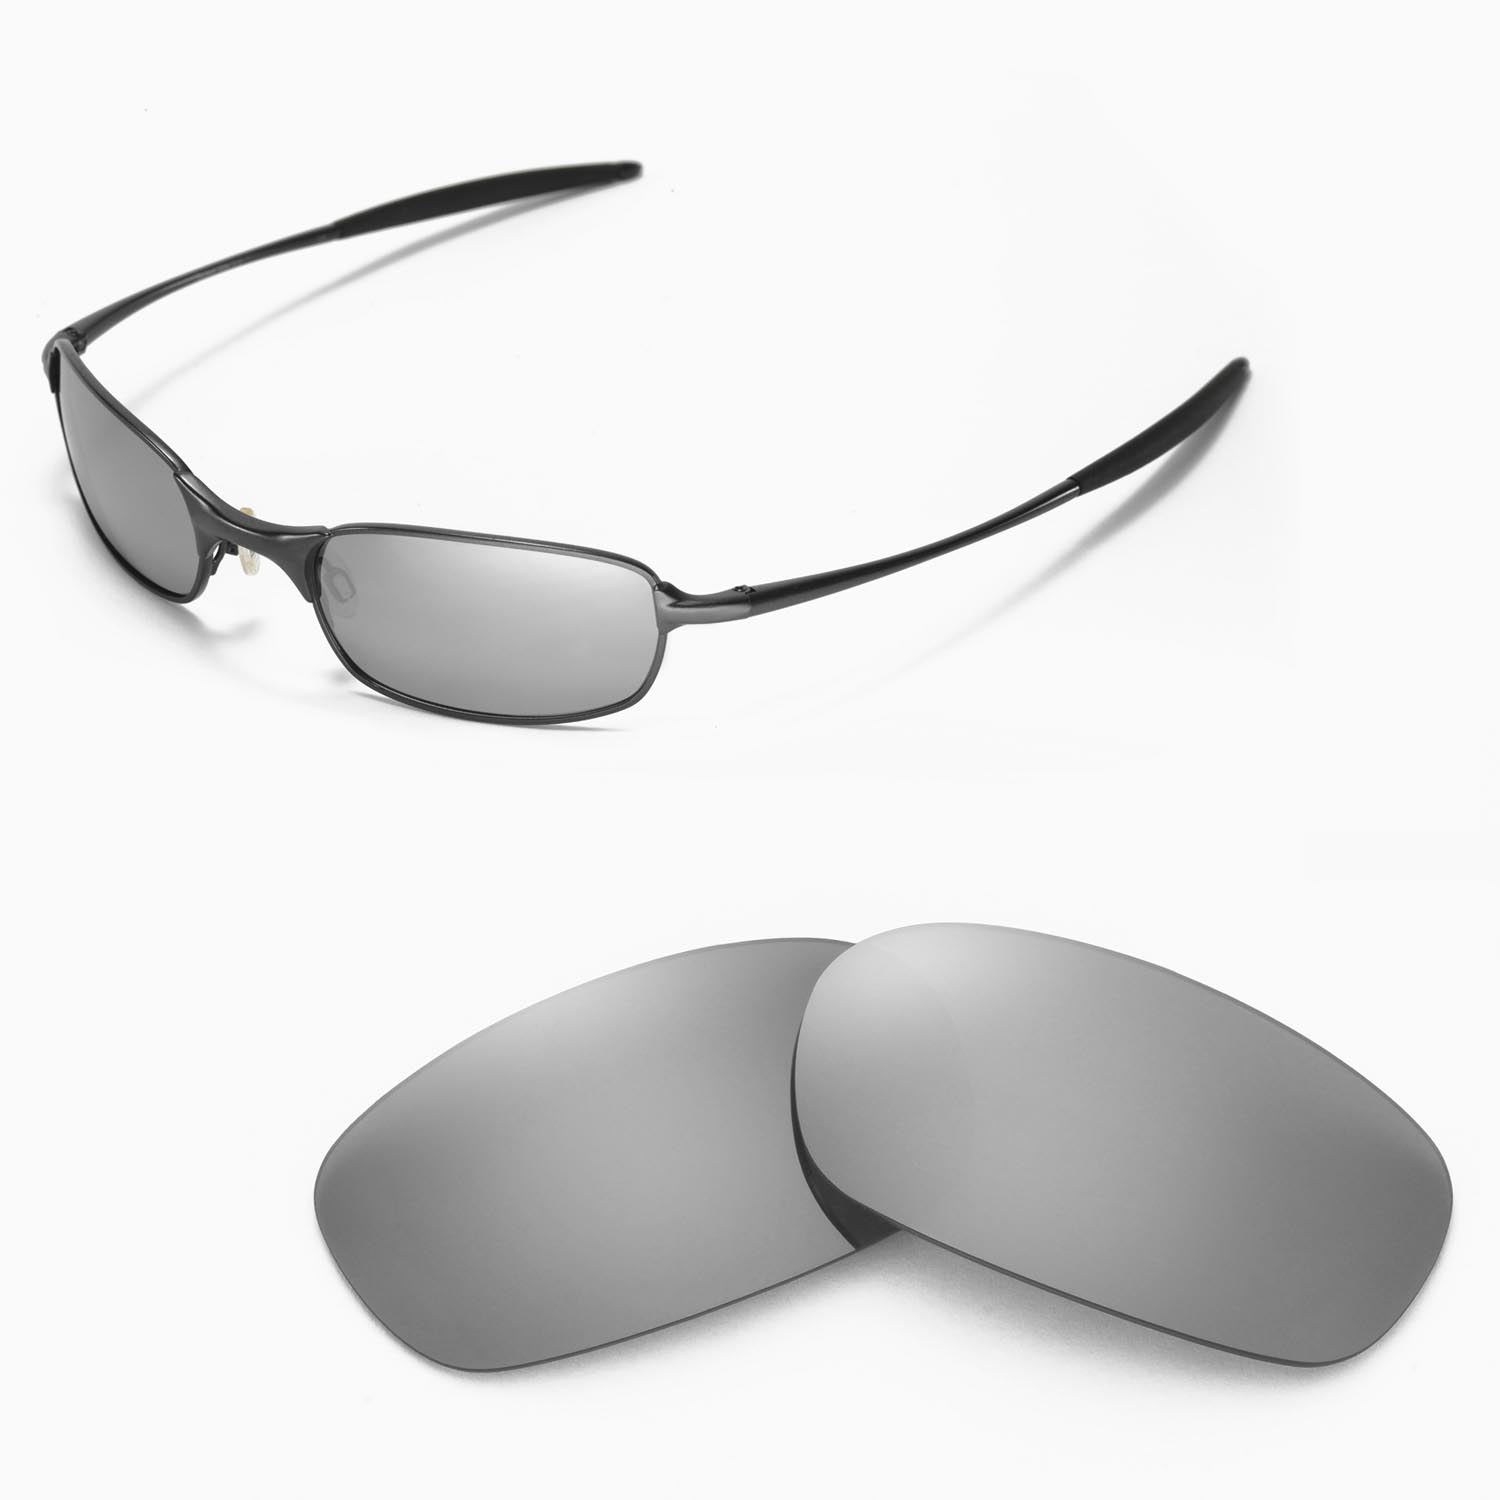 e2e3989a5d2 Details about New Walleva Polarized Titanium Replacement Lenses For Oakley  Square Wire 2.0